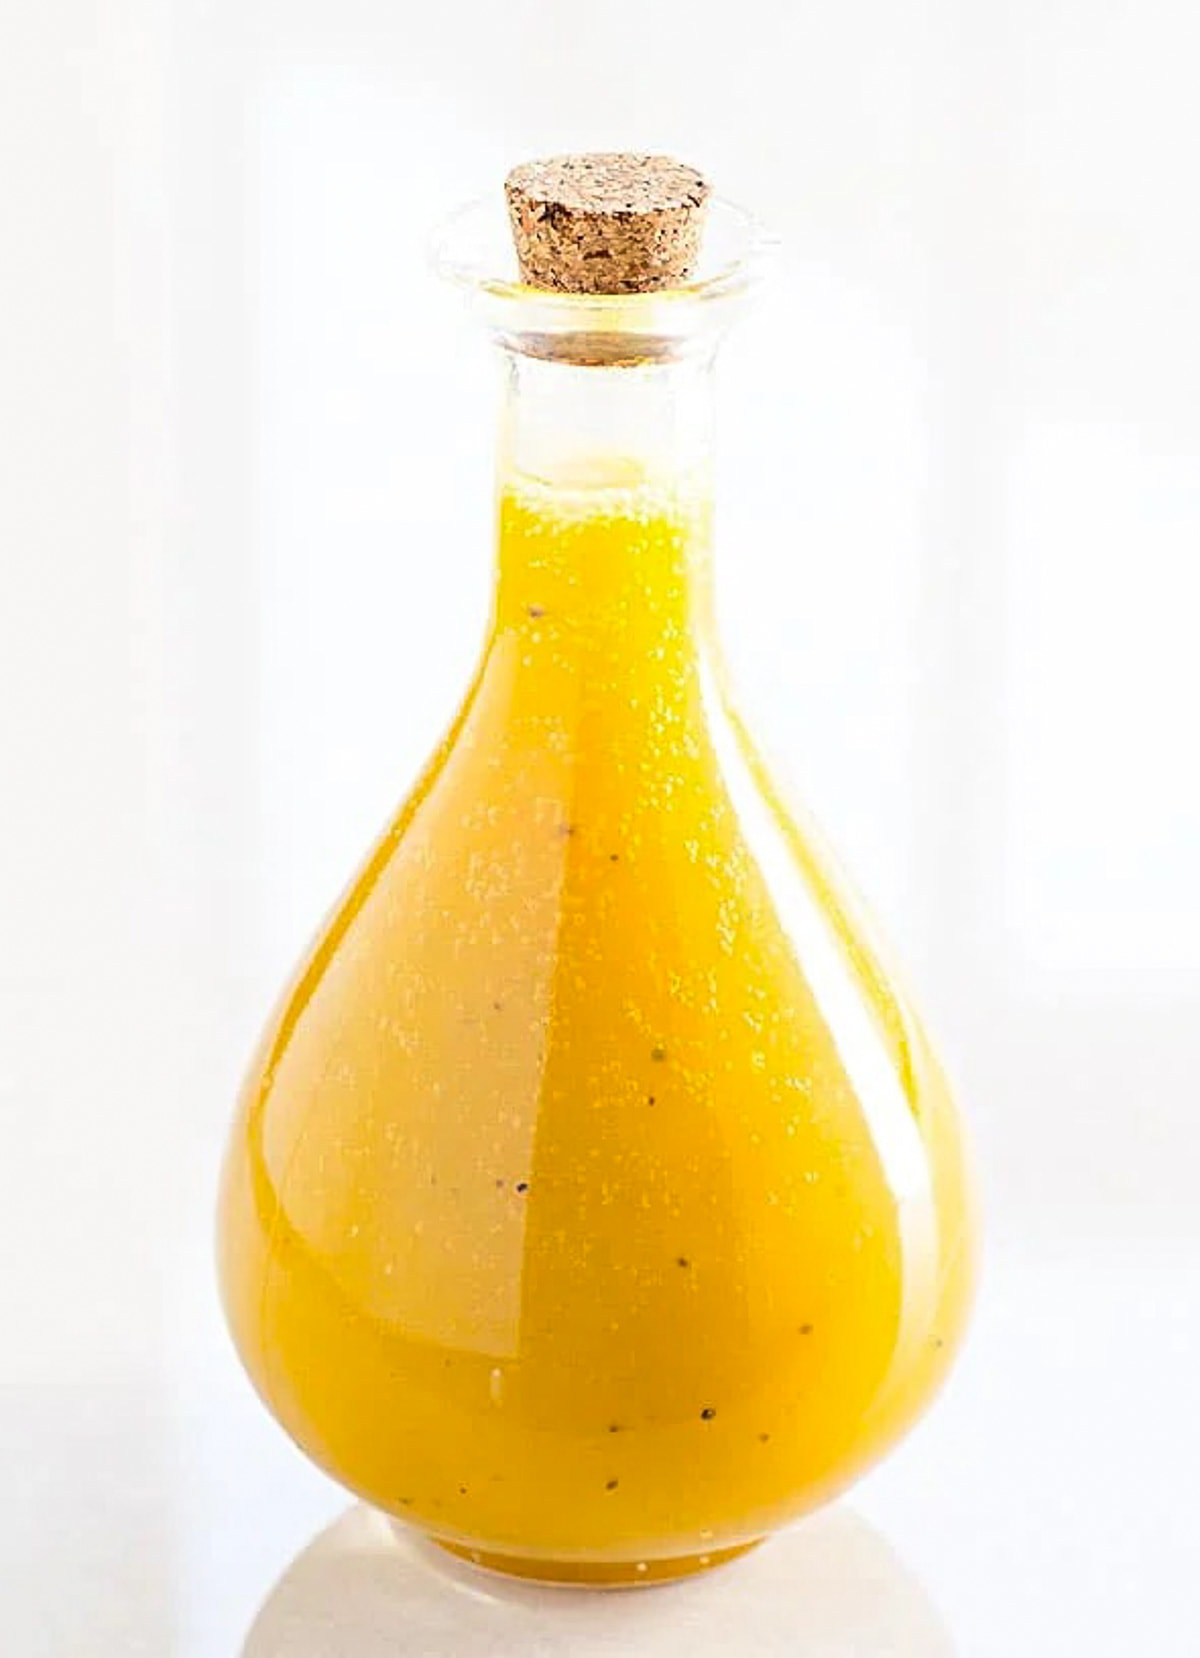 Healthy Honey Mustard Dressing Recipe that is great for dipping, chicken or salads. | ifoodreal.com